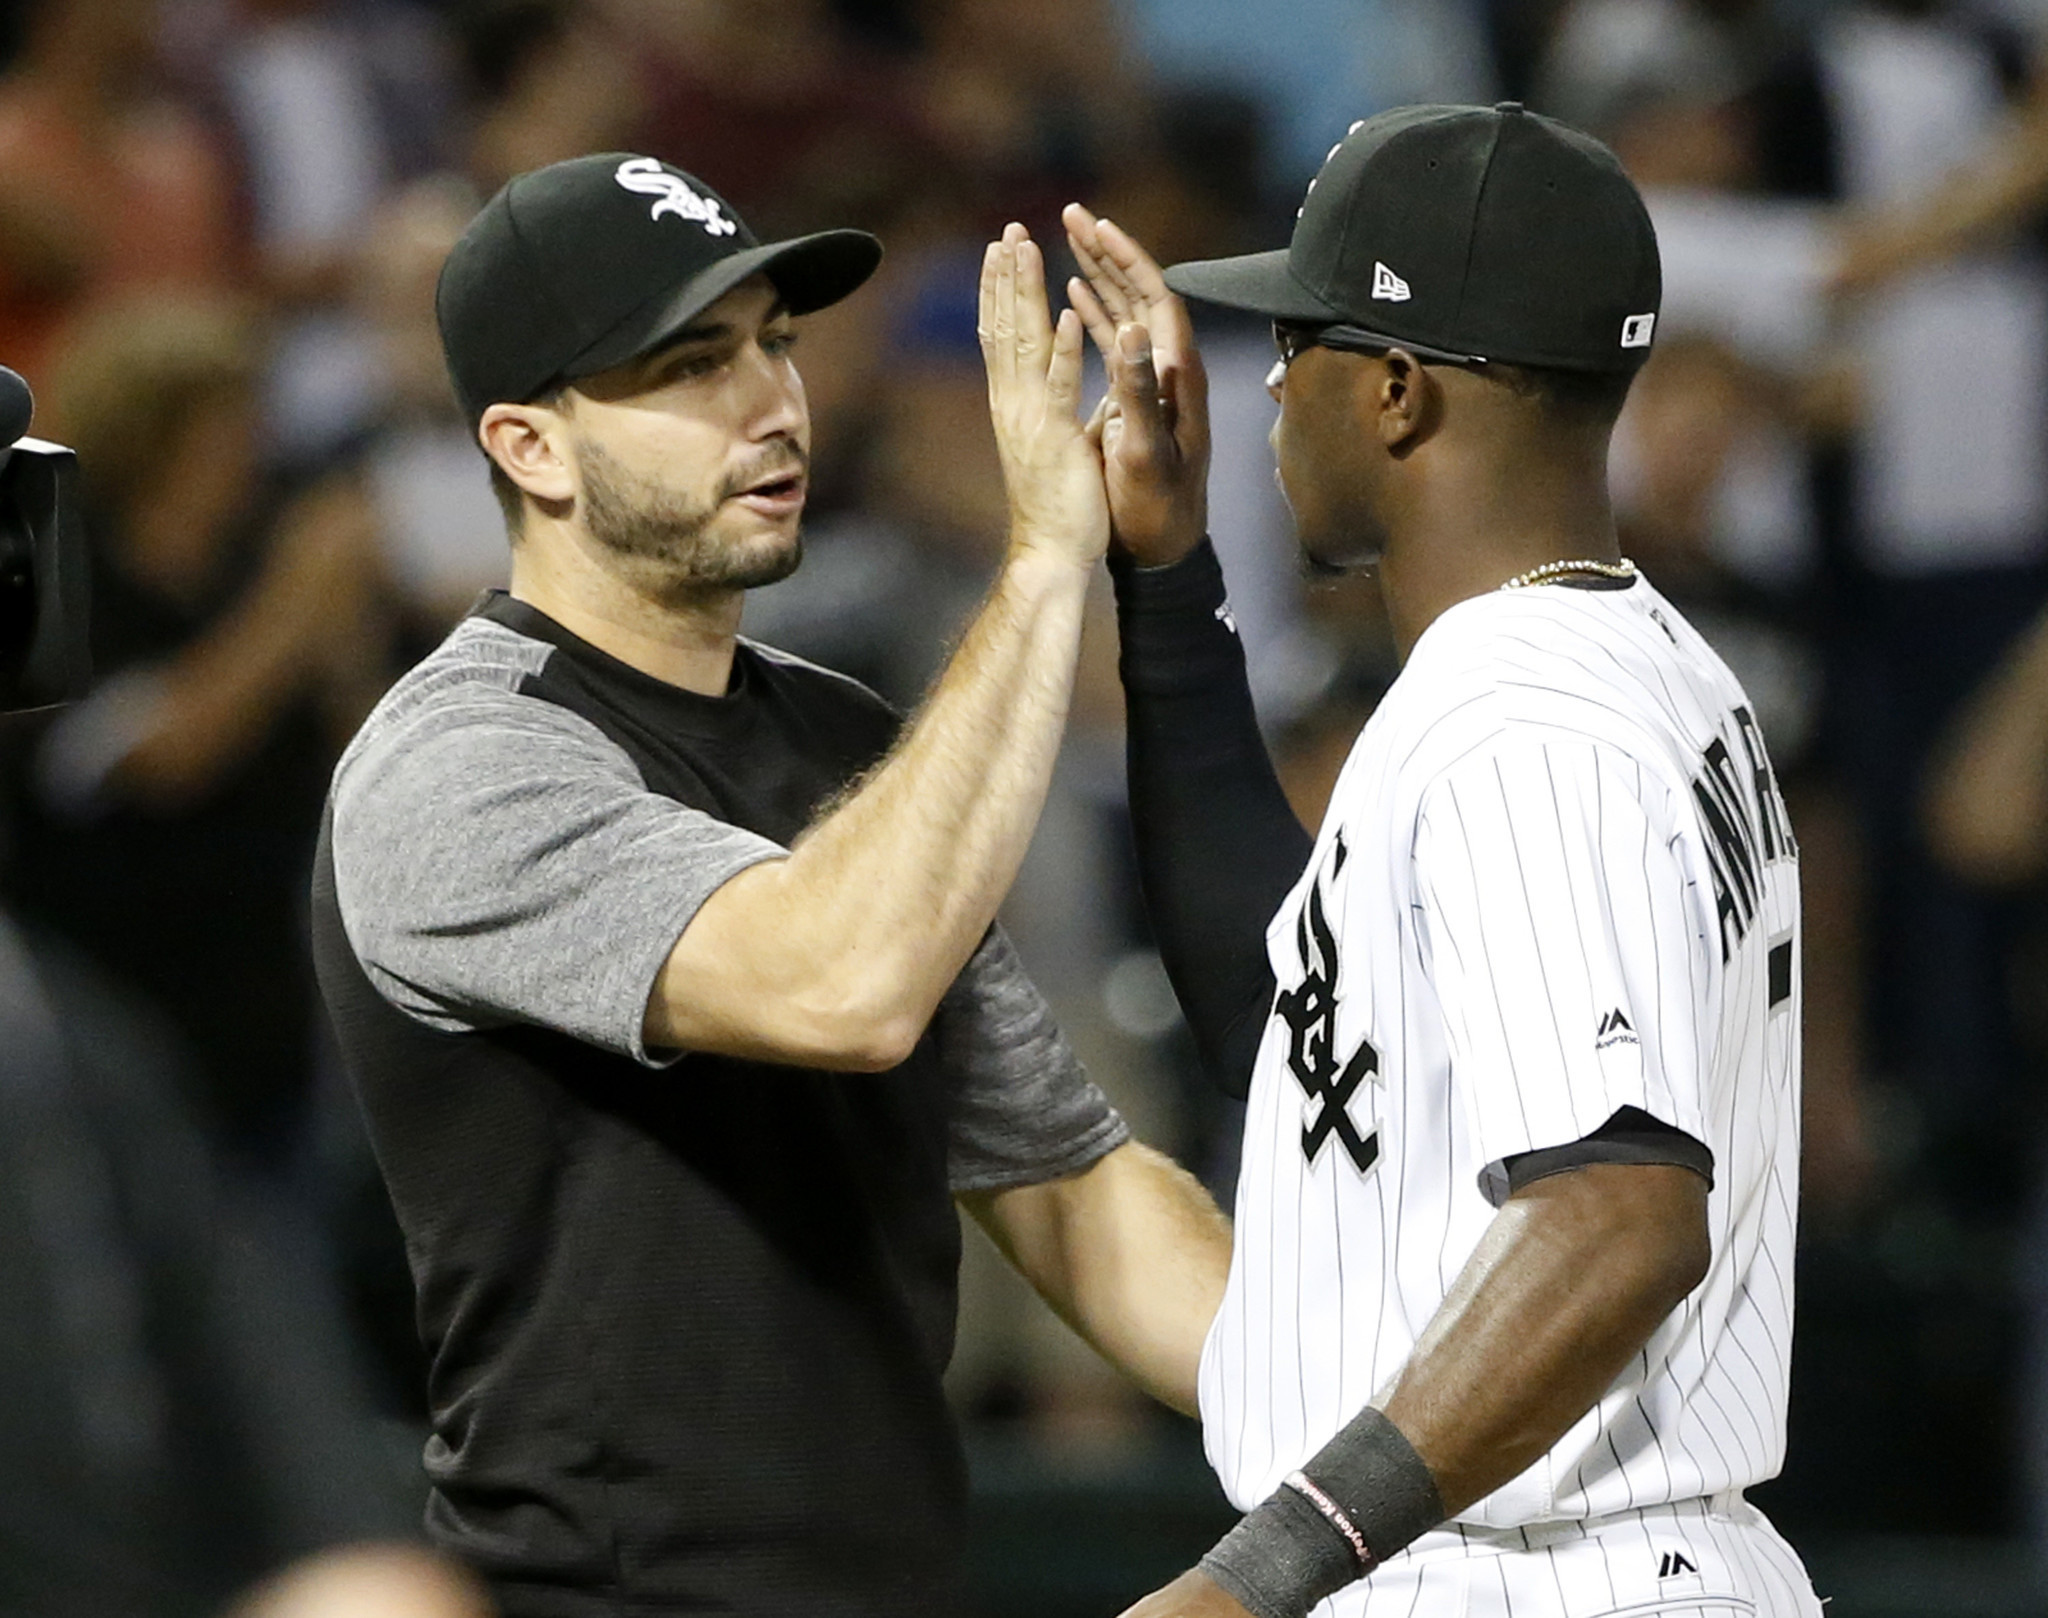 Ct-white-sox-topple-astros-notes-spt-0810-20170809